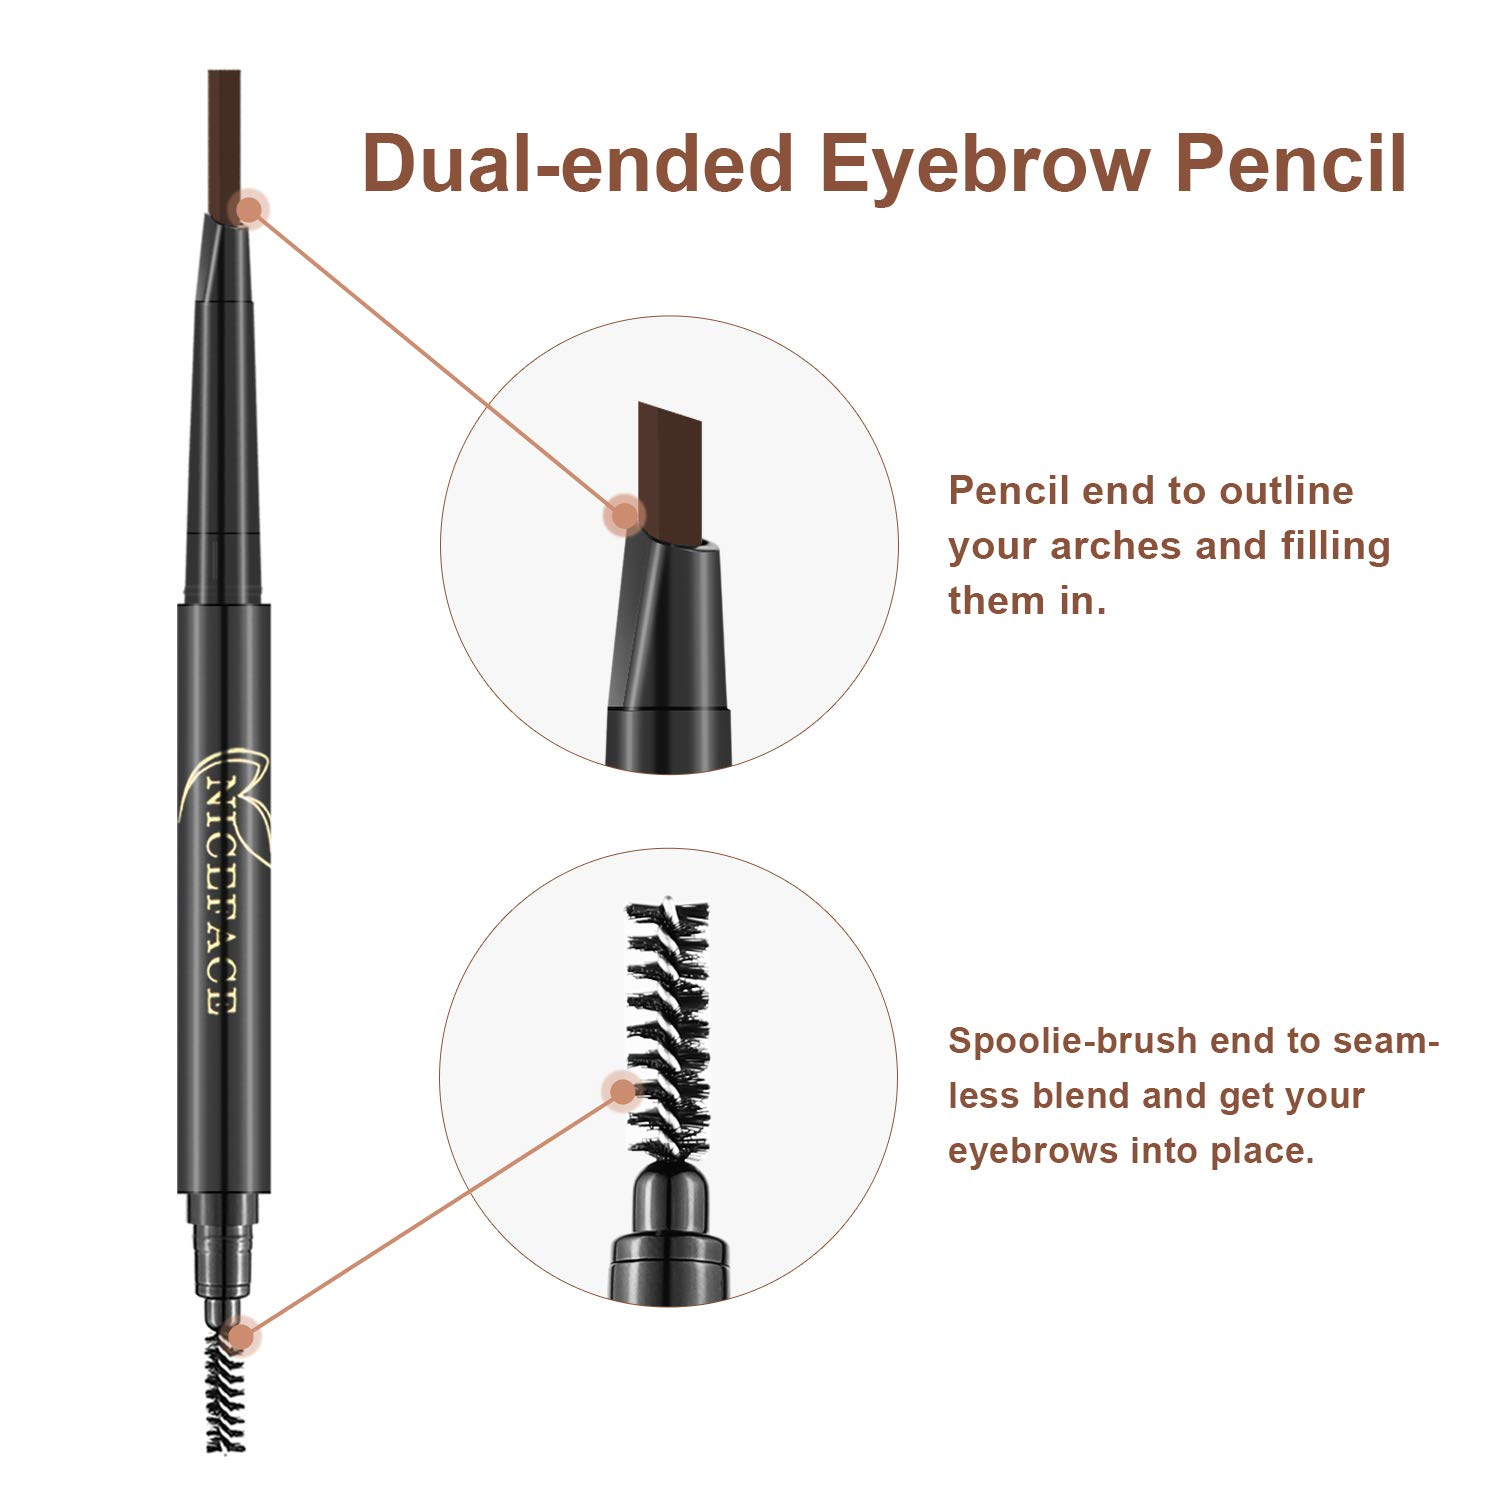 3-in-1 Eyebrow Pencil Brow Stylist Definer, Waterproof, Sweat-proof, Smudge-proof and Long-lasting Brow Filler, Dark Brown/Light Brown/Coffee, 0.01 oz by NICEFACE (Image #4)